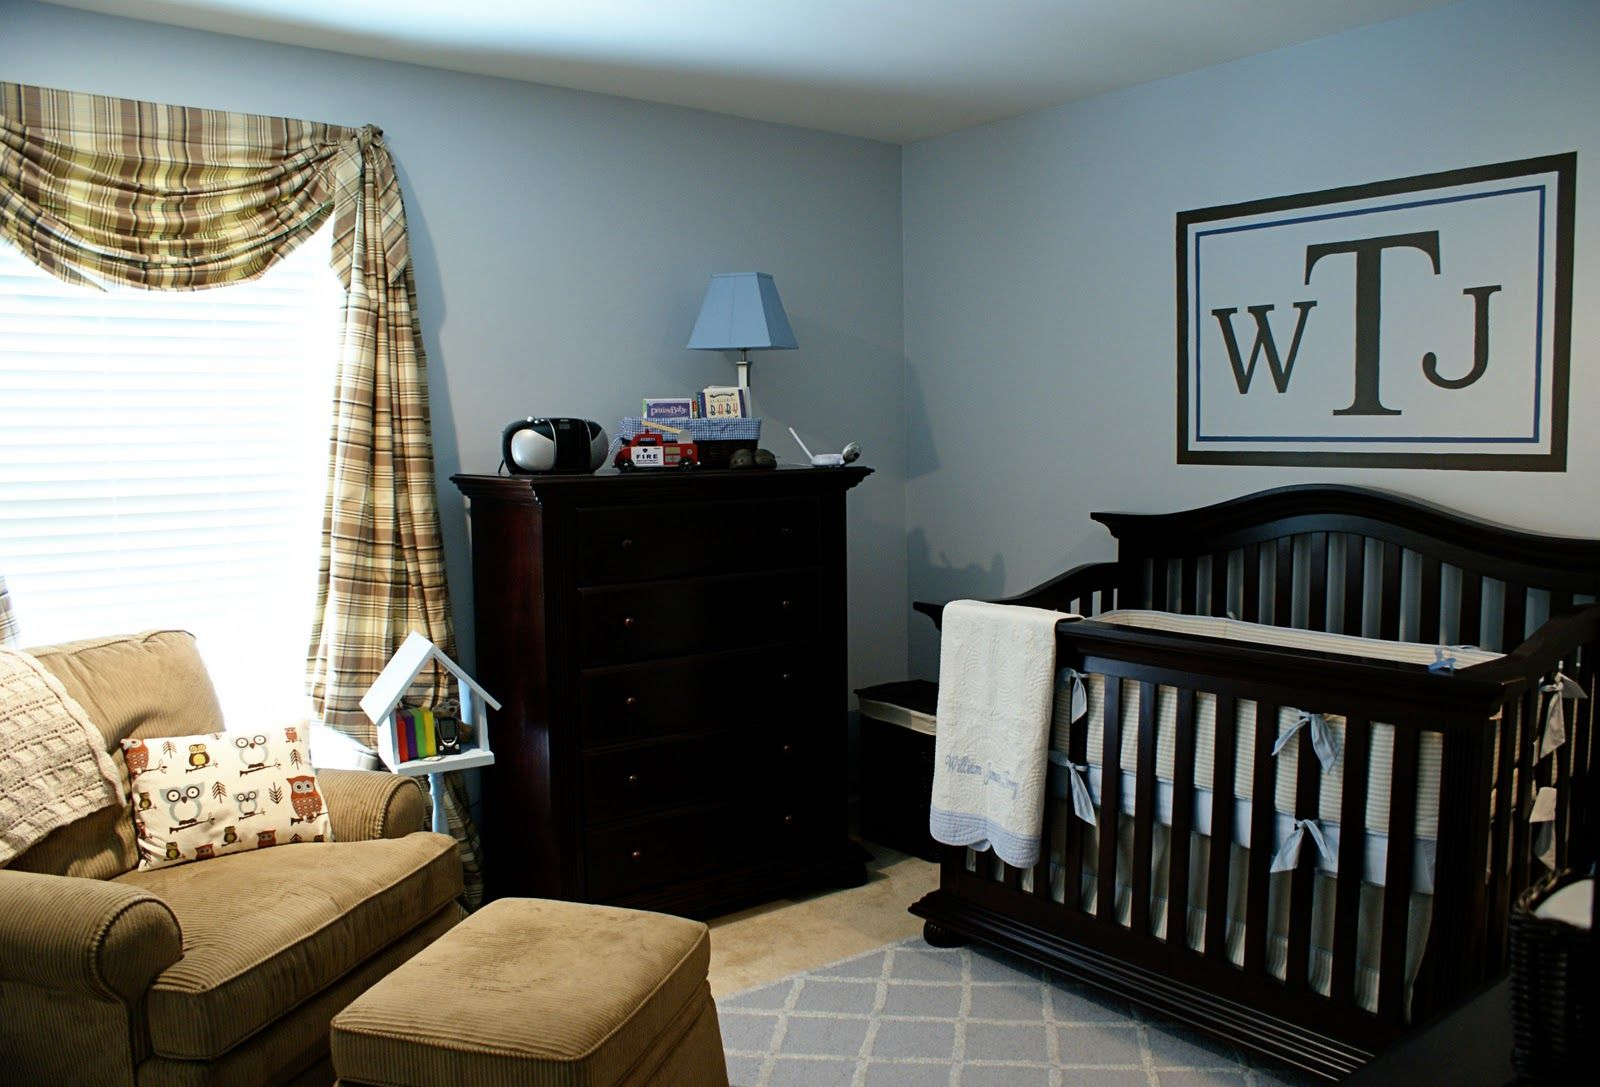 Room nursery on pinterest babies nursery nurseries and baby boy r - Room decoration for baby boy ...